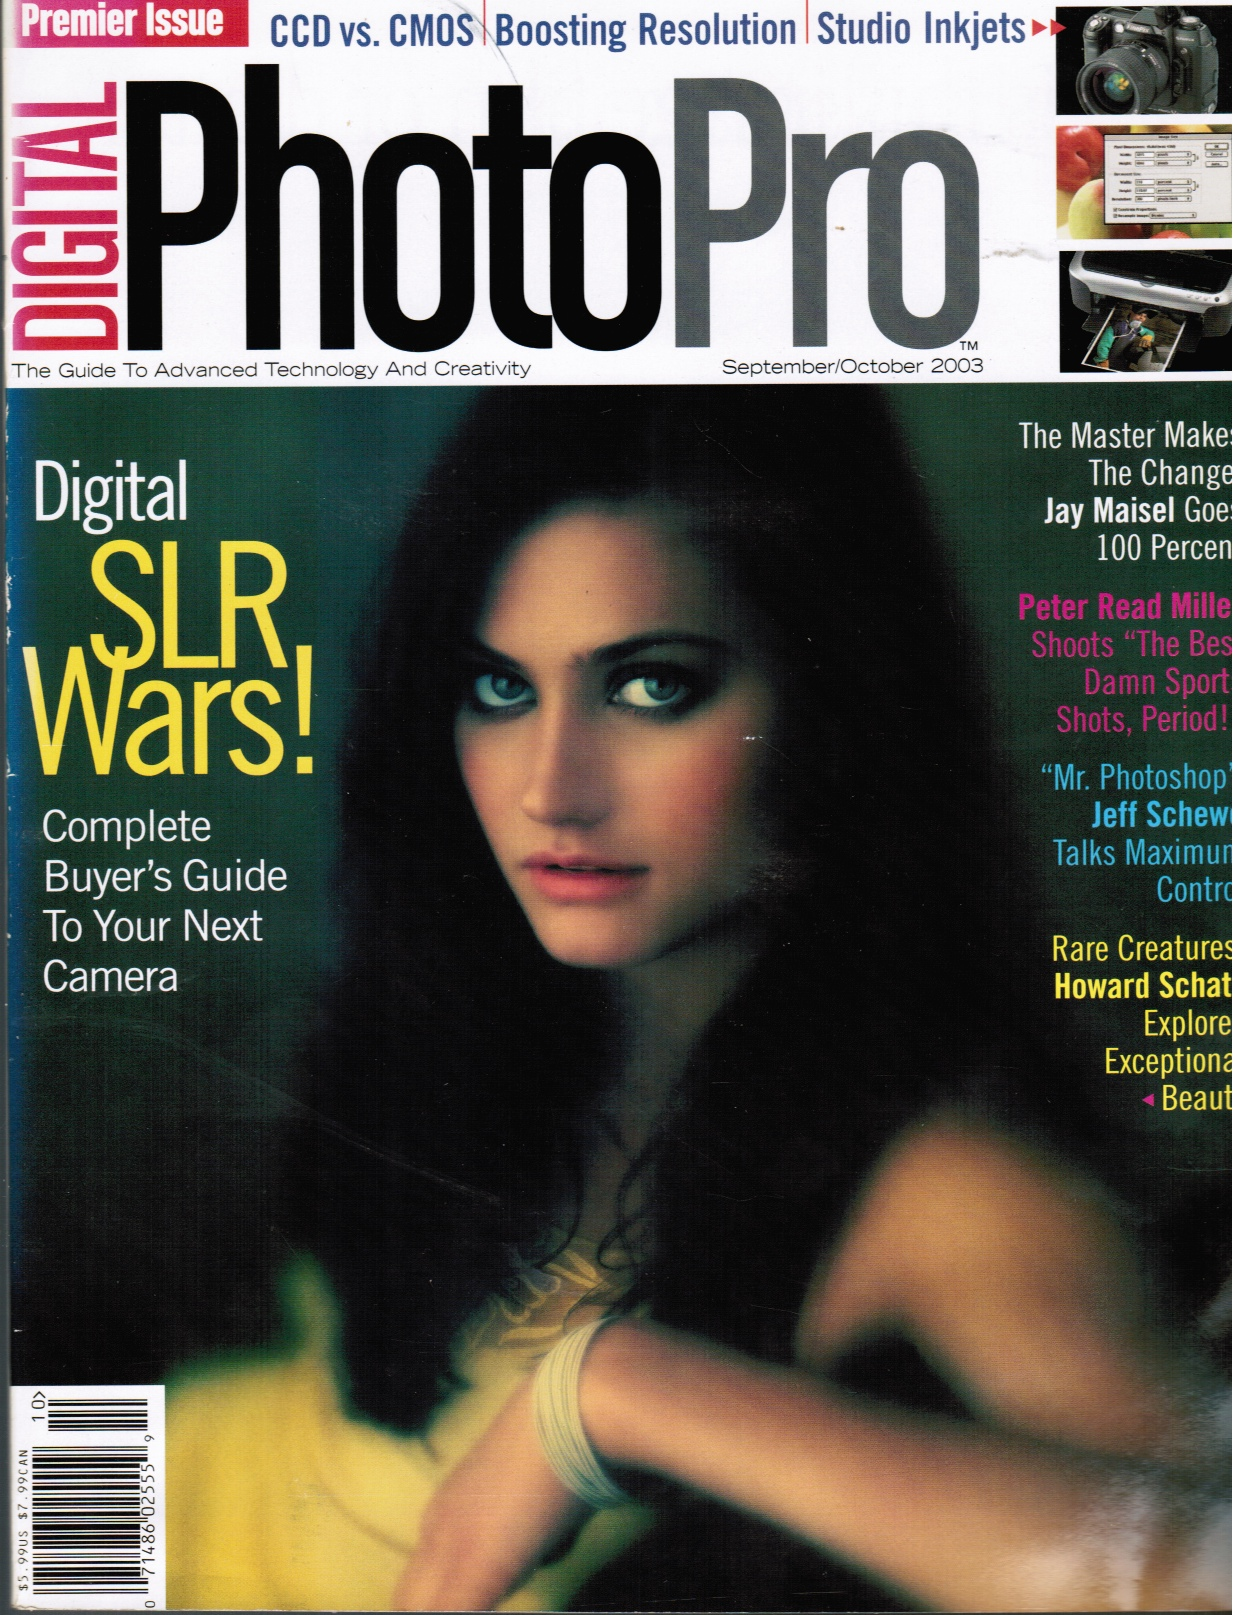 Image for Digital Photopro Magazine: September/October 2003  PREMIER ISSUE Danielle Farrell, cover